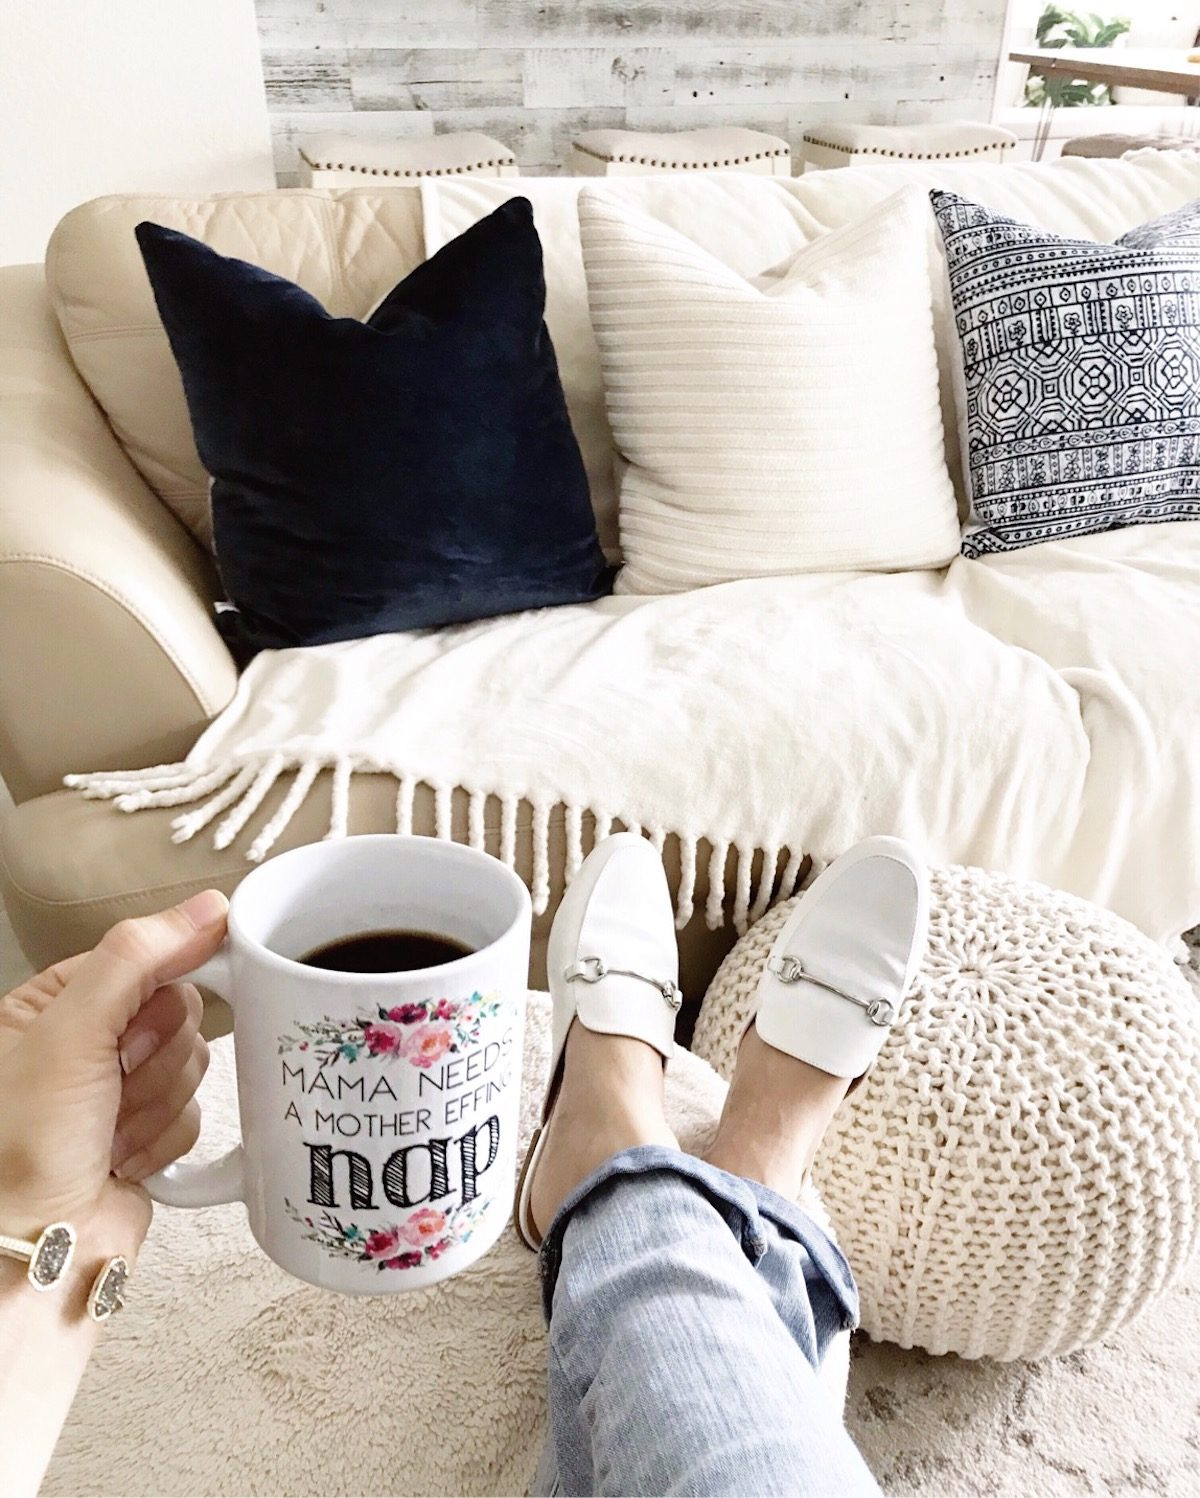 Gucci loafer dupes, white loafer mules, funny mom mug, ivory knit pouf, custom pillows